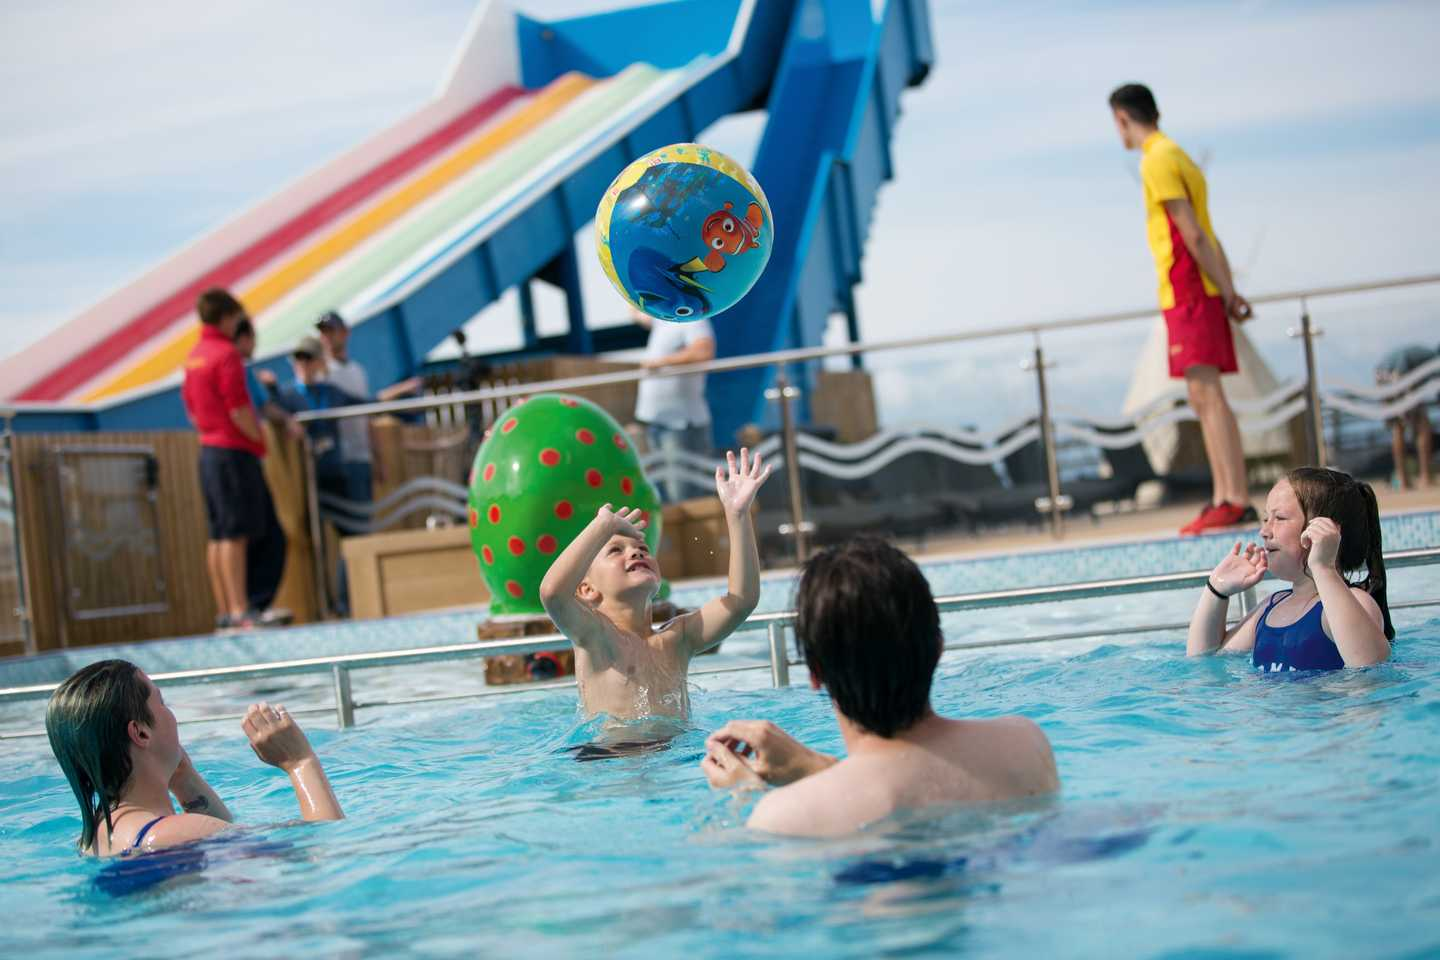 Guests playing in the outdoor pool at Doniford Bay